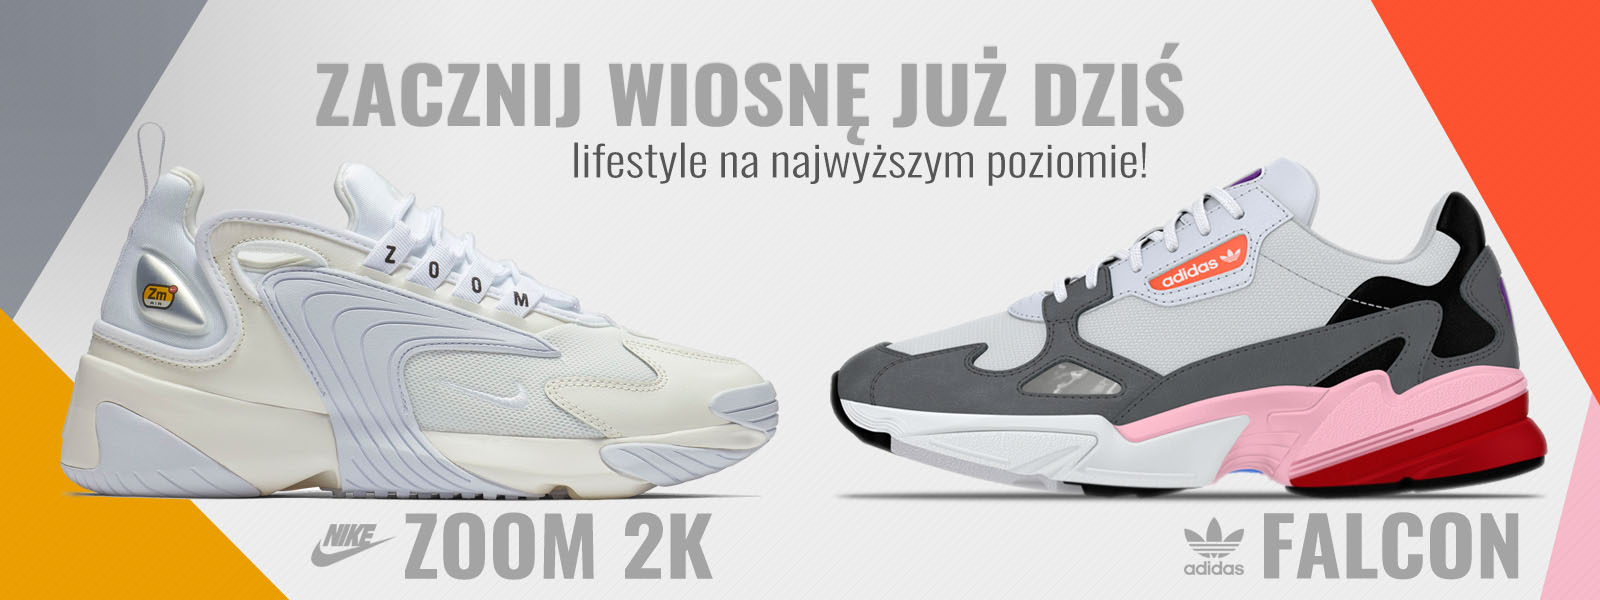 Nike ZOOM 2k vs. adidas FALCON